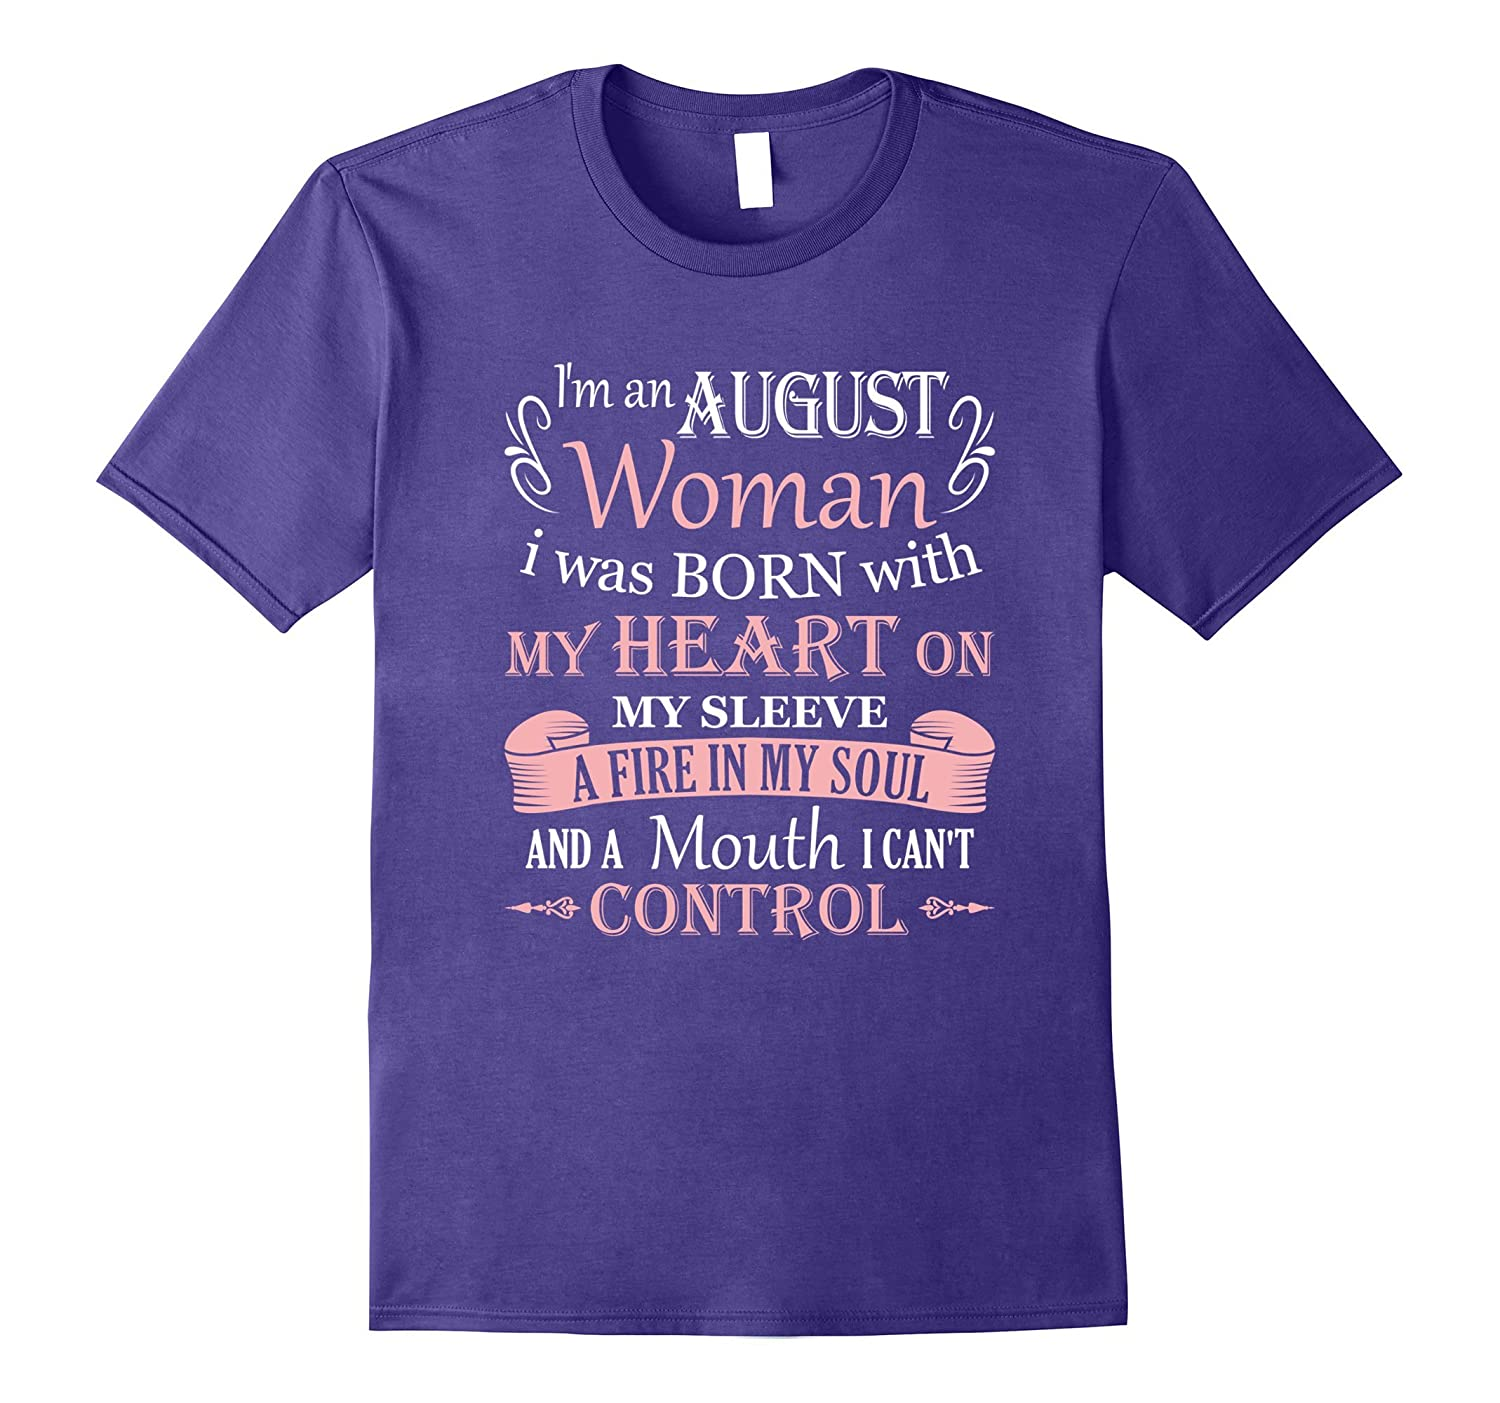 I'm an August Woman Birthday T-Shirt Gift Present for Her-CL